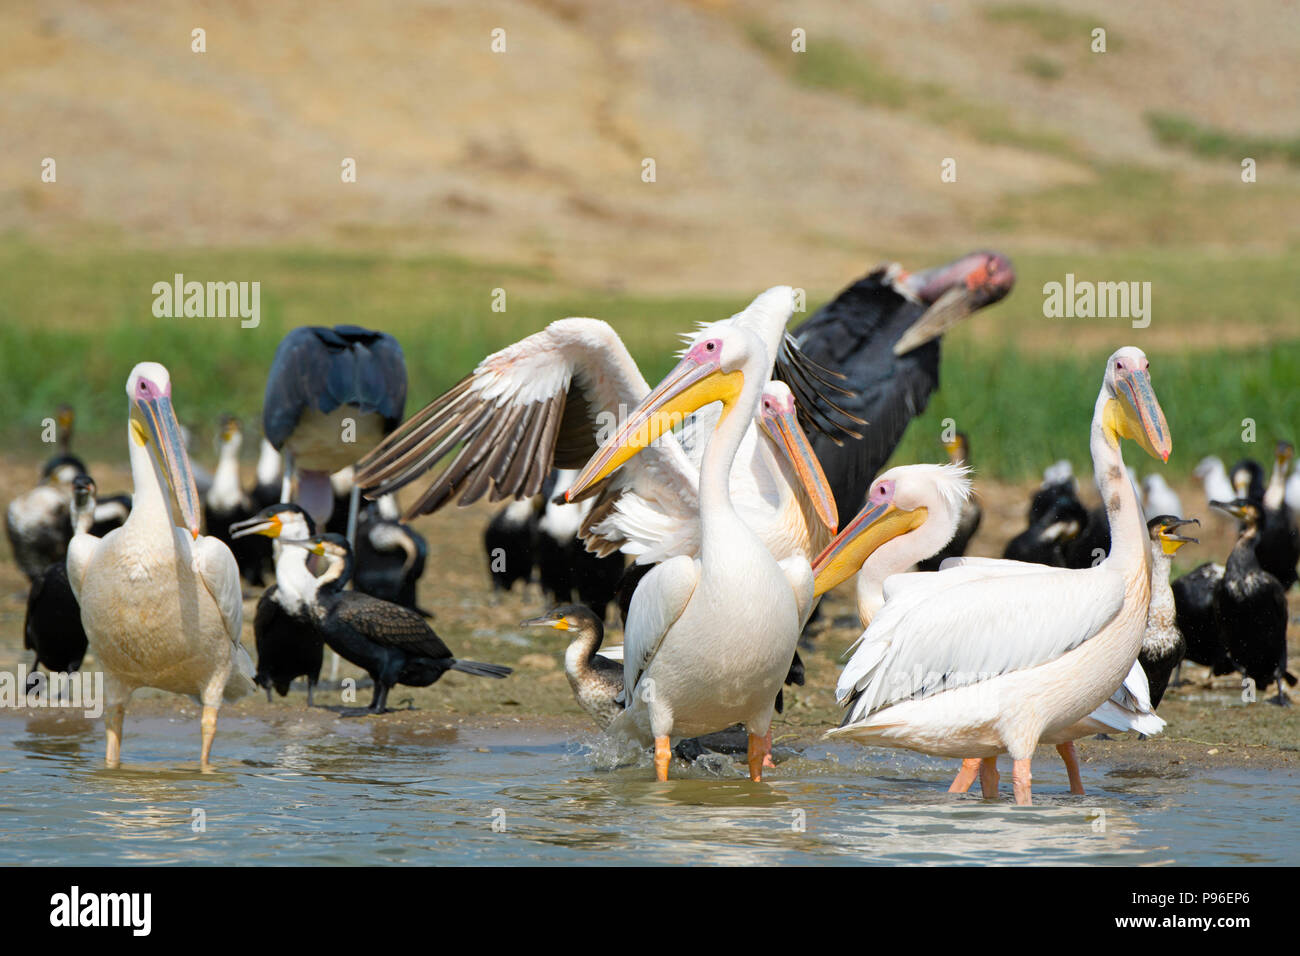 Great White Pelicans, Pelican, White Breasted Cormorant, Cormorants and Marabou Storks, Birds Kazinga Channel, Queen Elizabeth National Park, Uganda - Stock Image